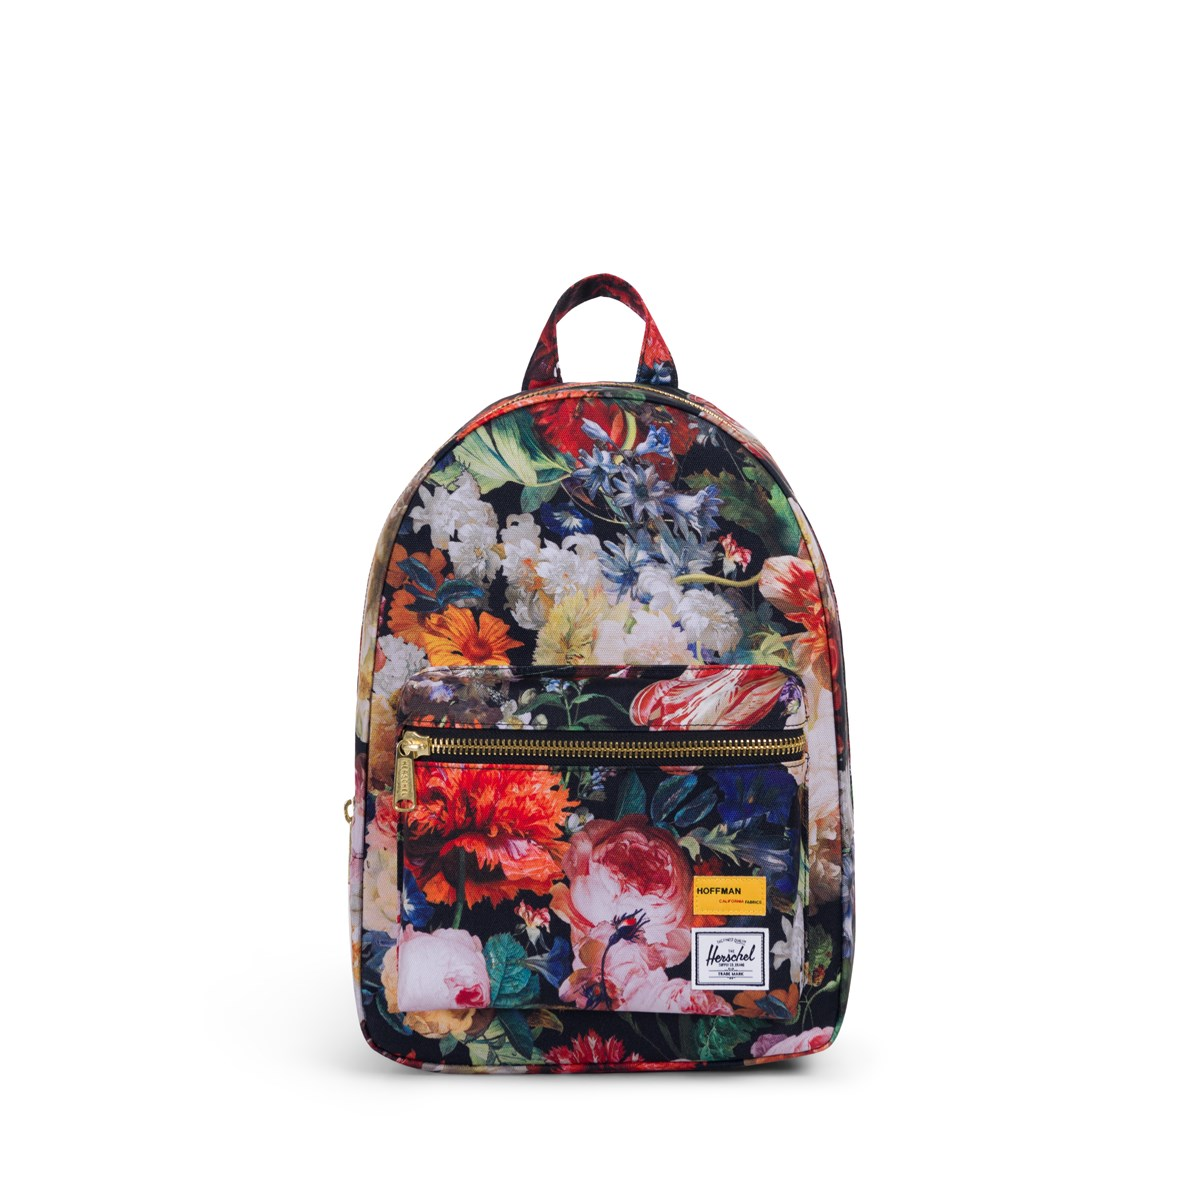 e4e484daf67 Hoffman Collection Grove X-Small Backpack in Floral. Previous. default  view  ALT1  ALT2